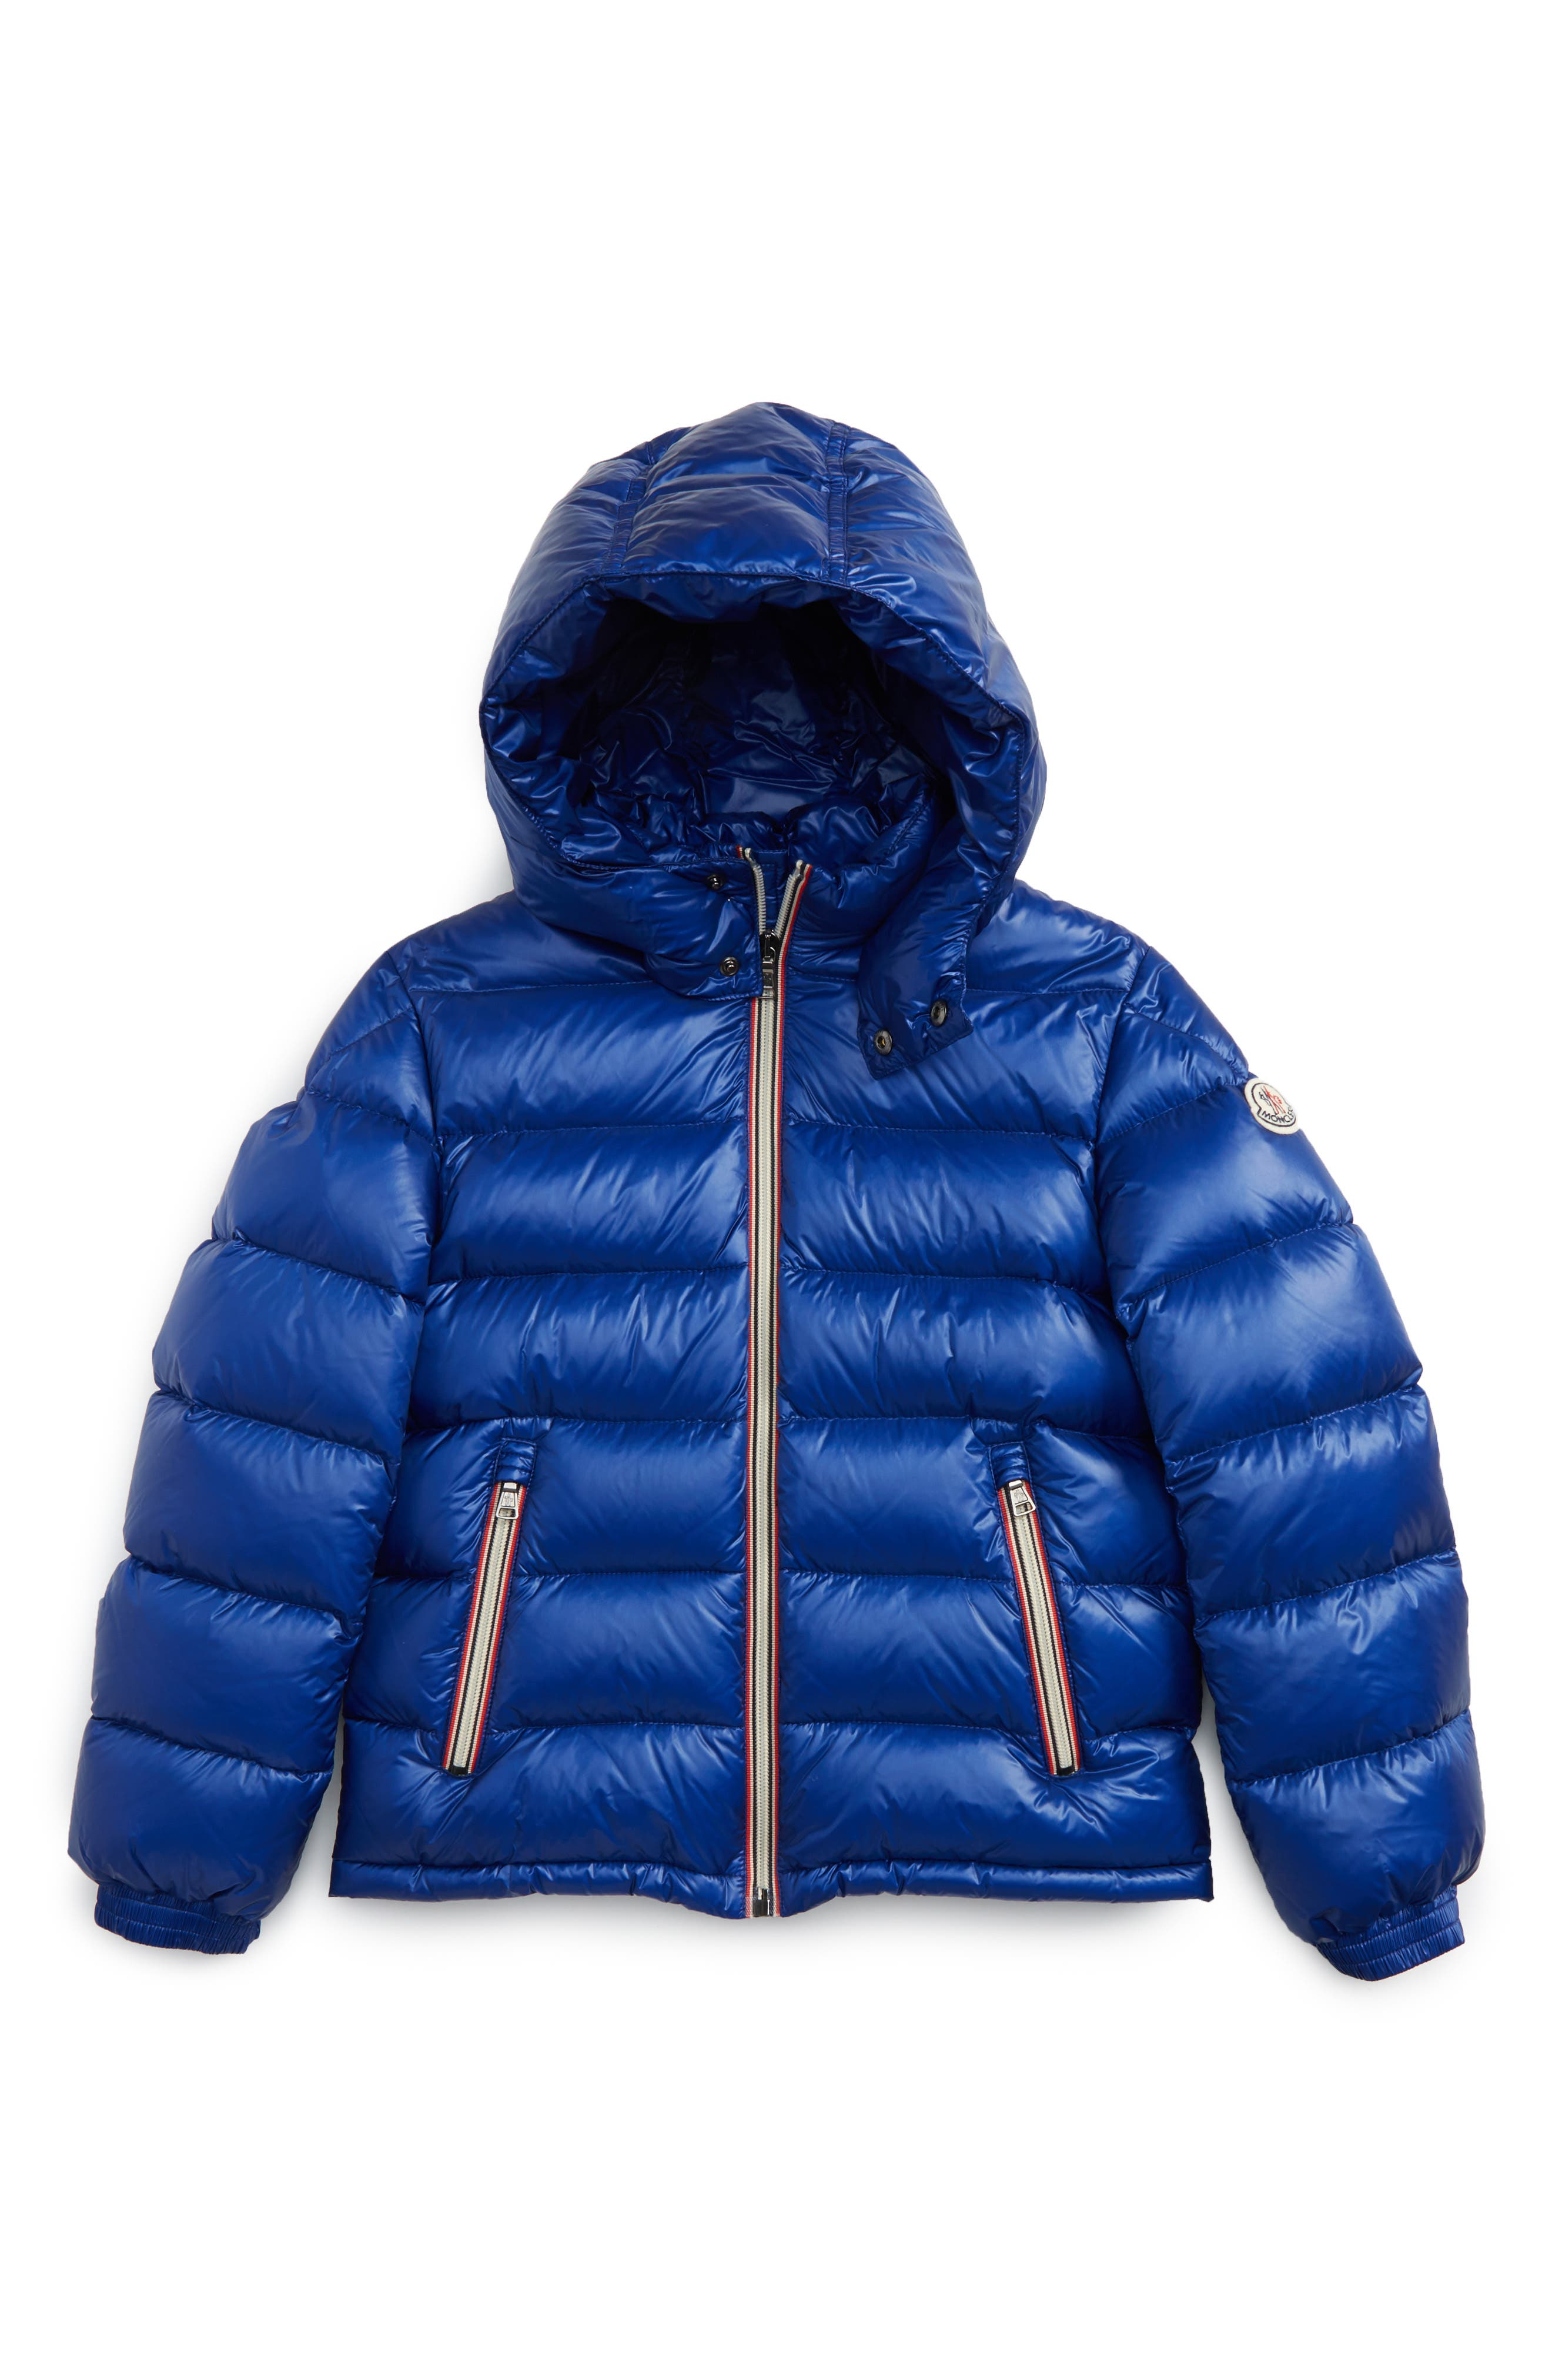 New Gaston Hooded Water Resistant Down Jacket,                             Main thumbnail 1, color,                             400